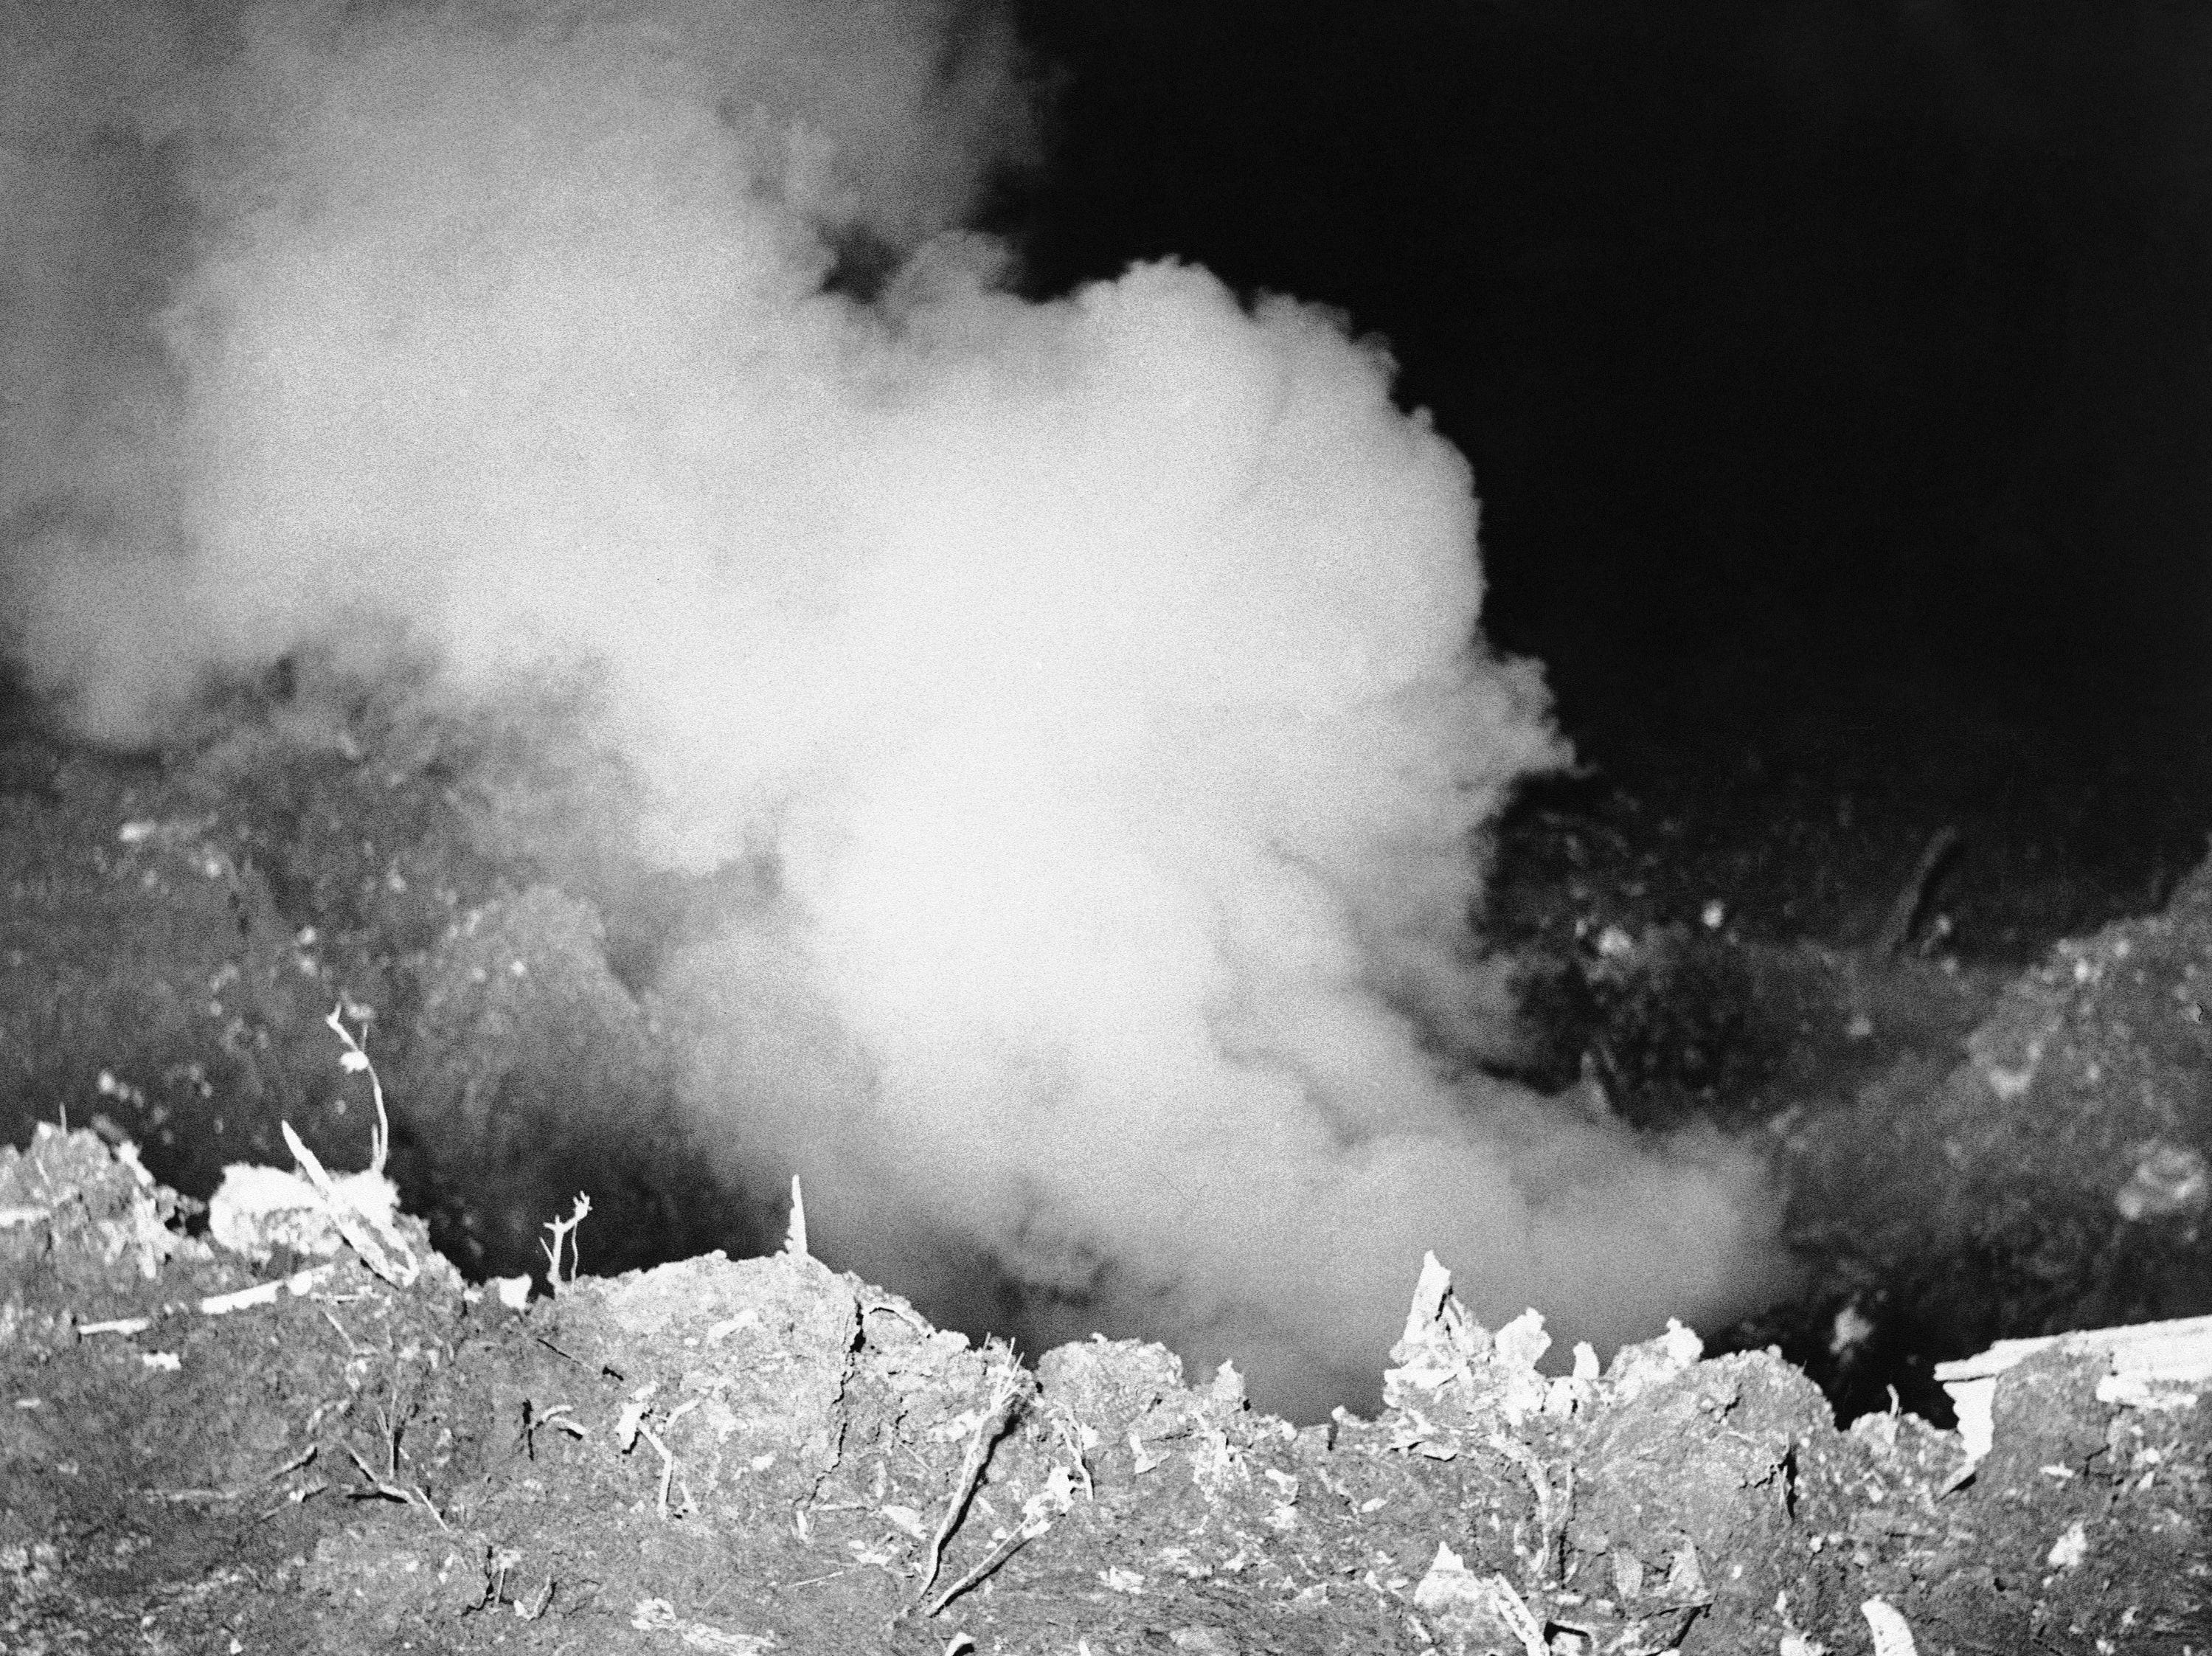 Smoke pours up from 20-foot-deep crater dug by fuselage of Northwest Airlines plane, March March 17, 1960 in Cannelton, Ind., six hours after crash. Crater, 30 feet across, contains debris and remains of 63 persons aboard. (AP Photo)